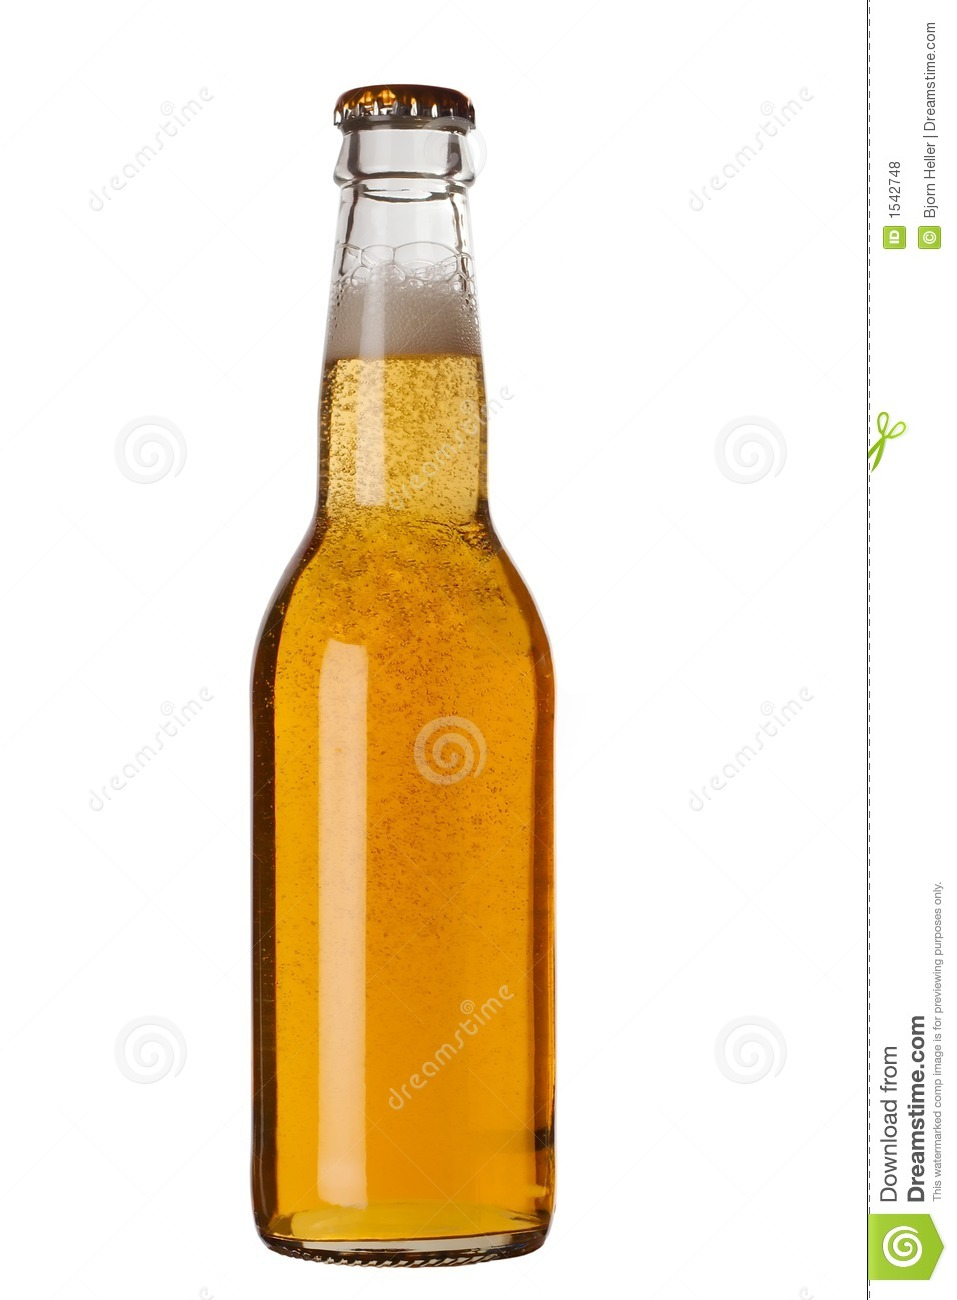 Beer Bottle With Liquid Royalty Free Stock Photos - Image: 1542748